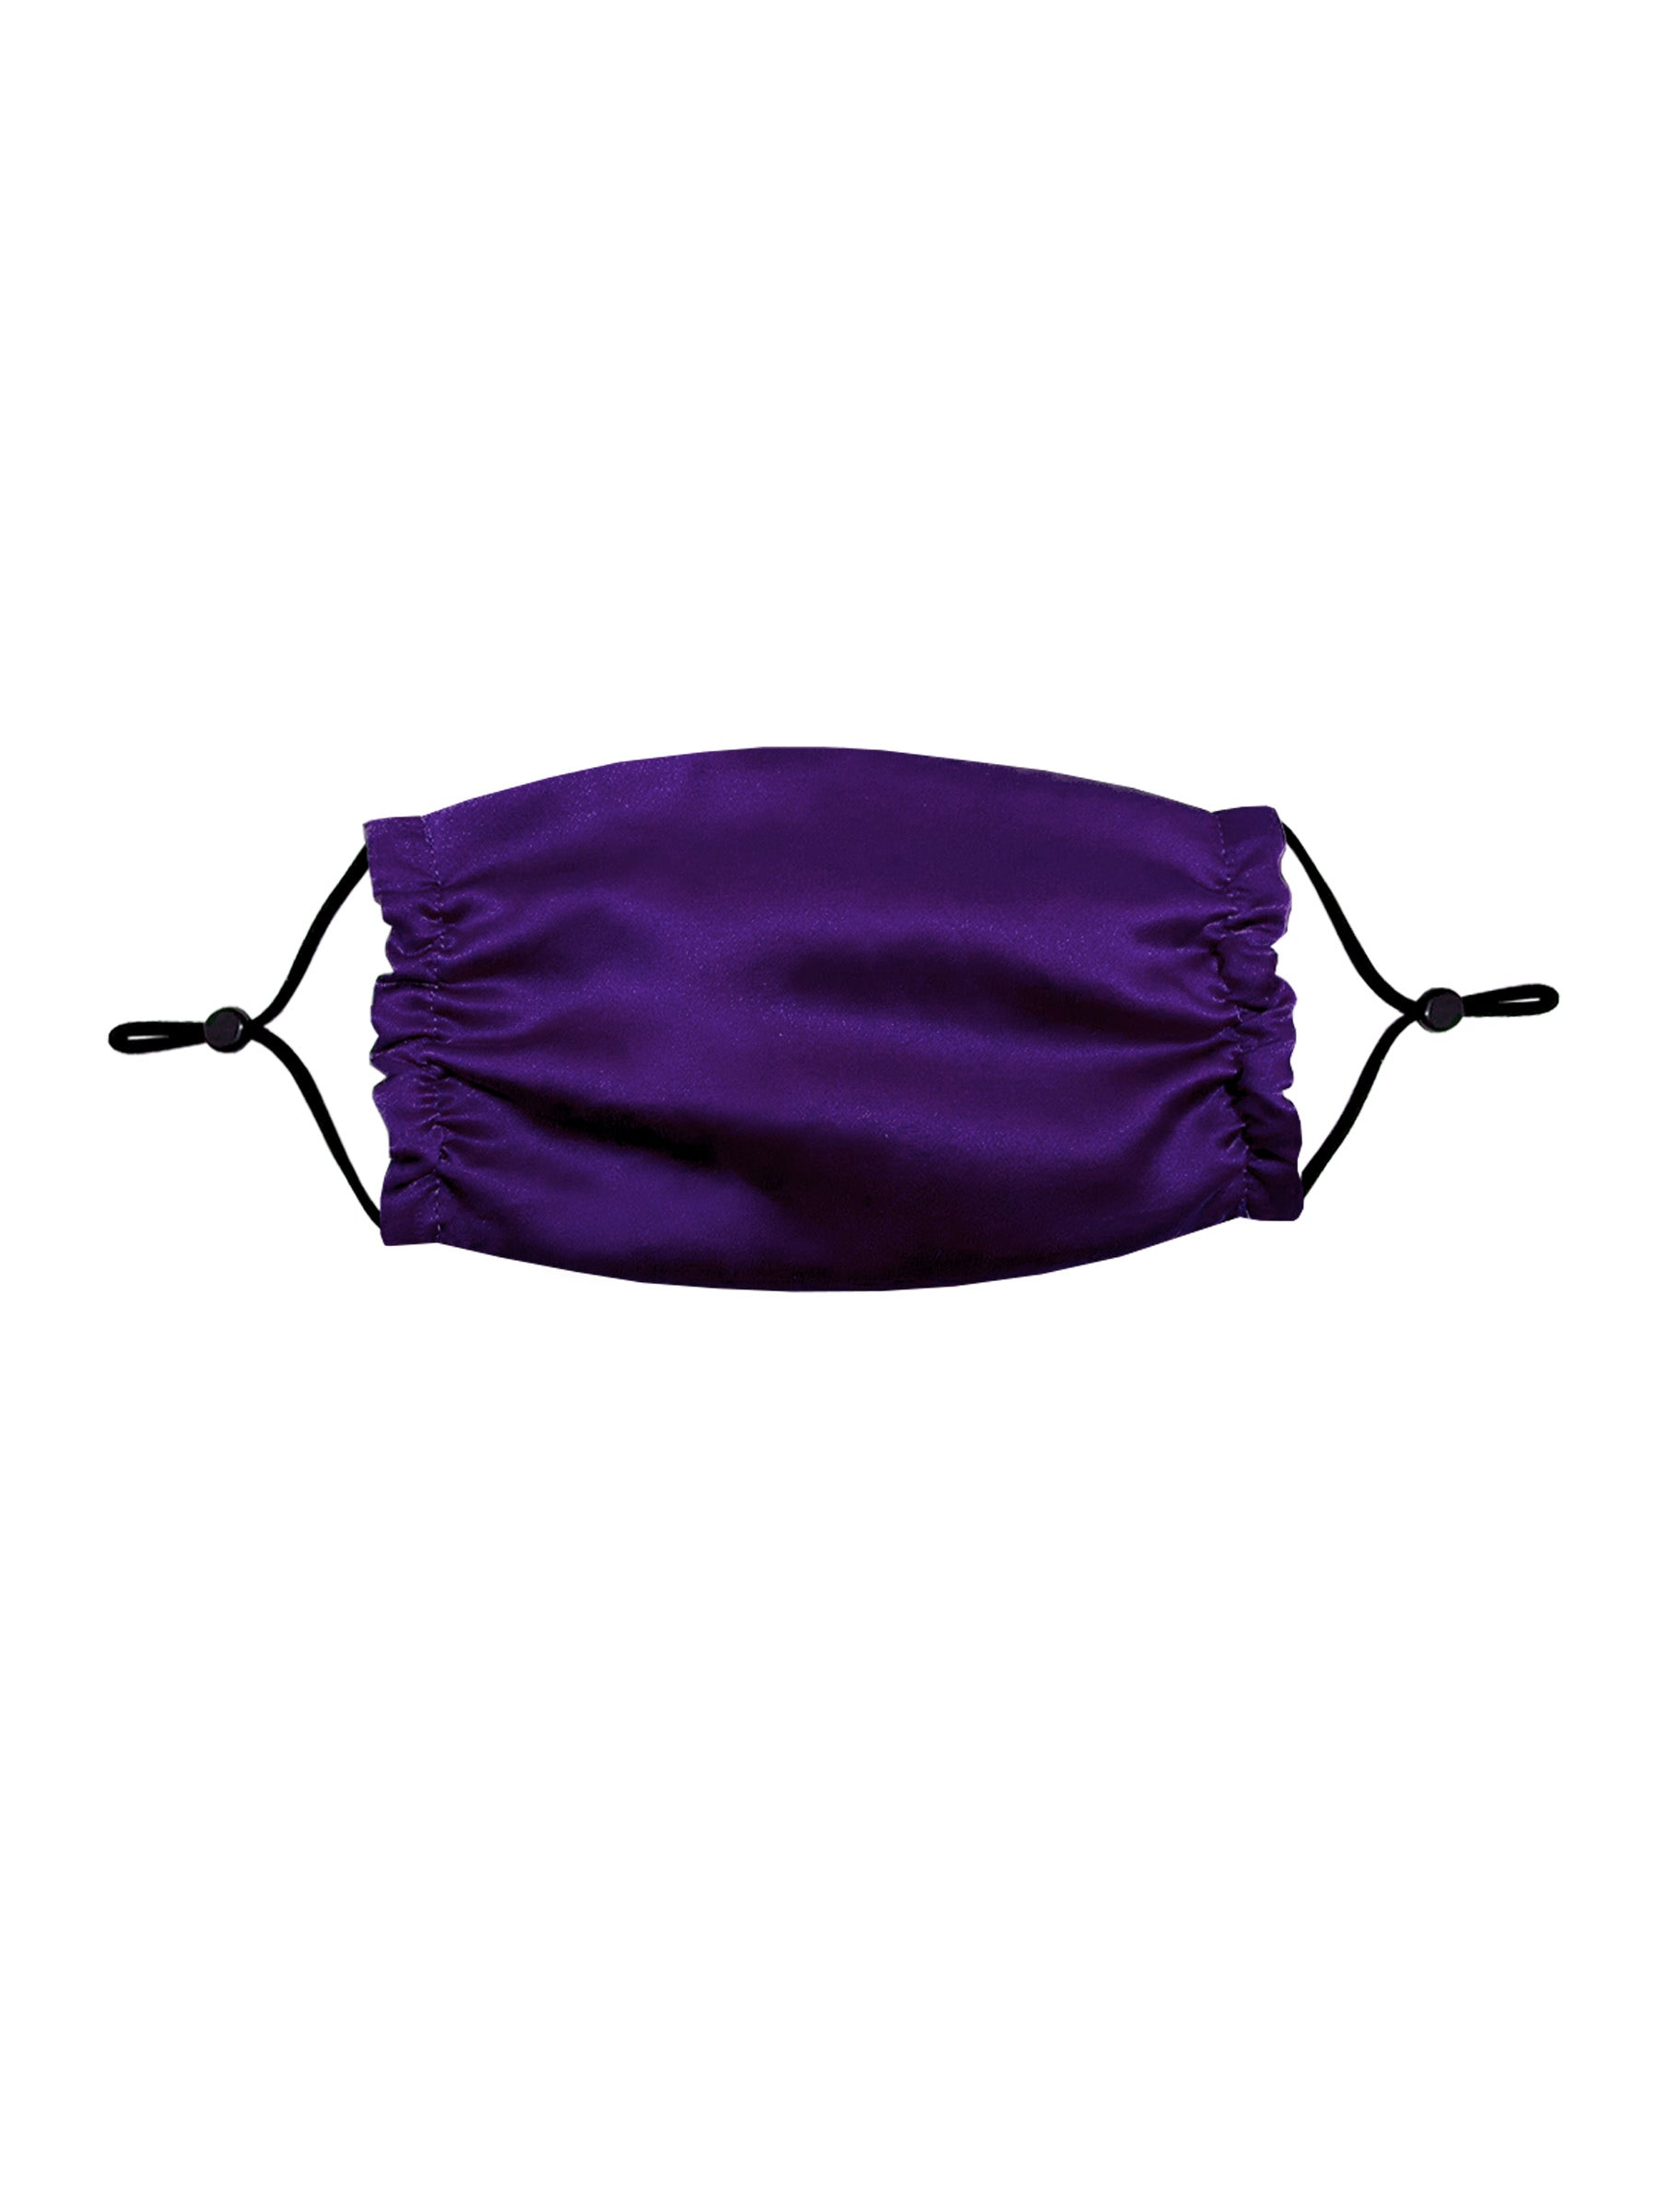 Silk Mask in Viola